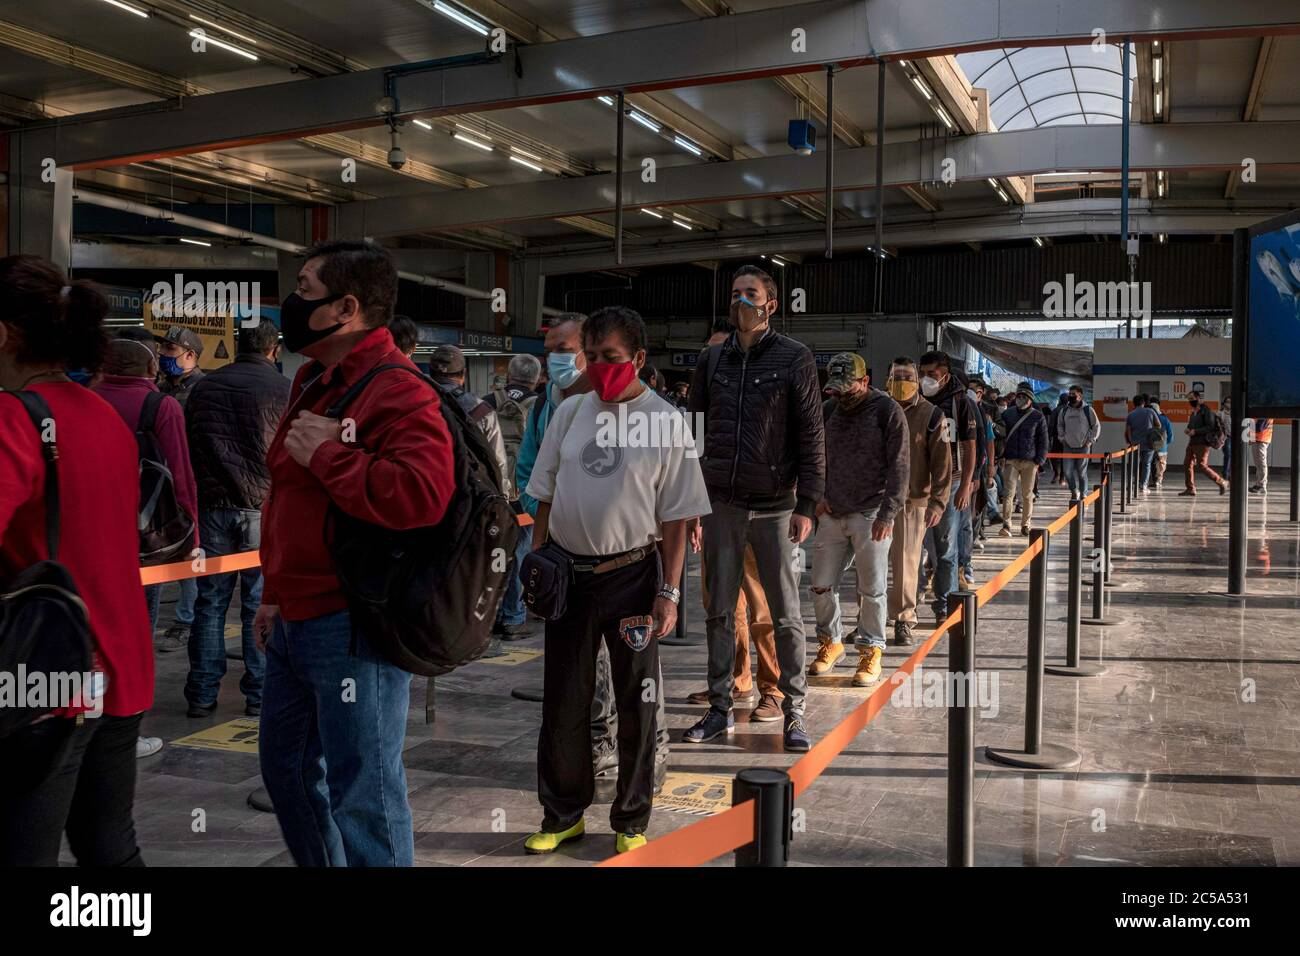 Mexiko Stadt, Mexico. 01st July, 2020. People wearing face masks are queuing in a subway station in the middle of the corona pandemic. Commuters now have to wear a mask, their hands are sprayed with disinfectant before using transport. The Mexican government has confirmed 226,089 Covid-19 infected and 27,769 coronavirus deaths. Credit: Jacky Muniello/dpa/Alamy Live News Stock Photo